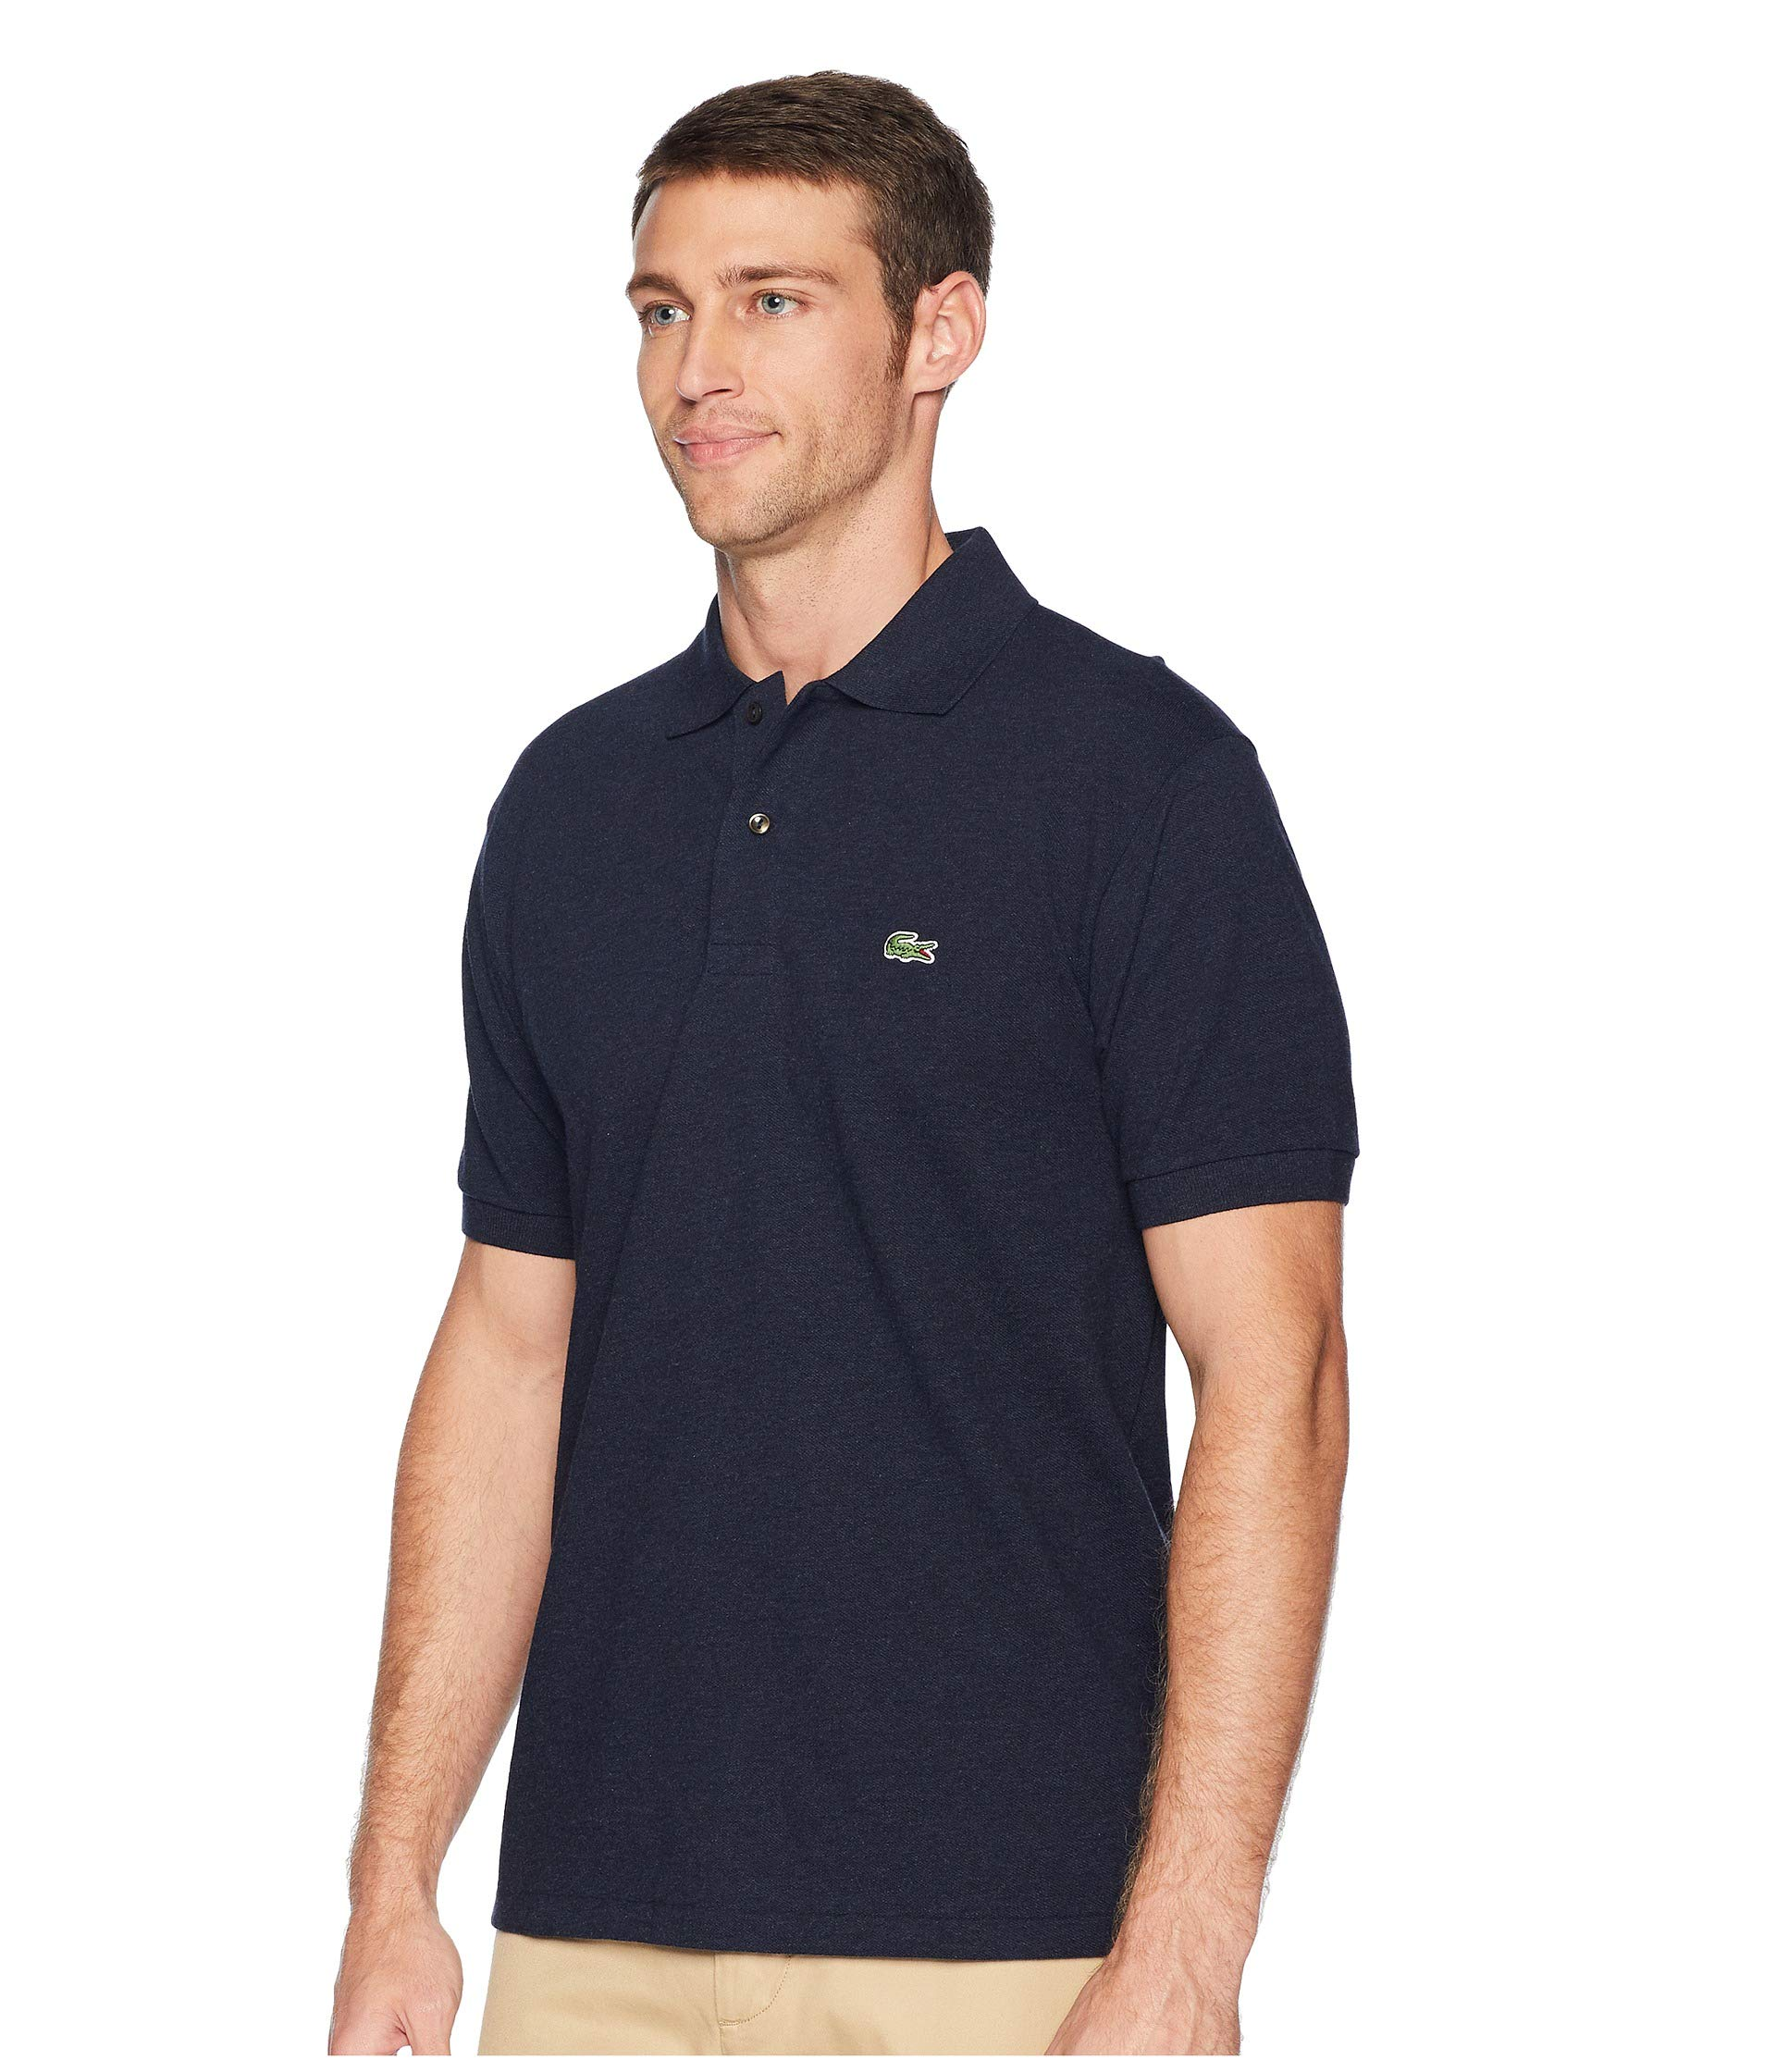 Lacoste Polo Classic Shirt Chine Eclipse Blue Pique rdTnrwOx